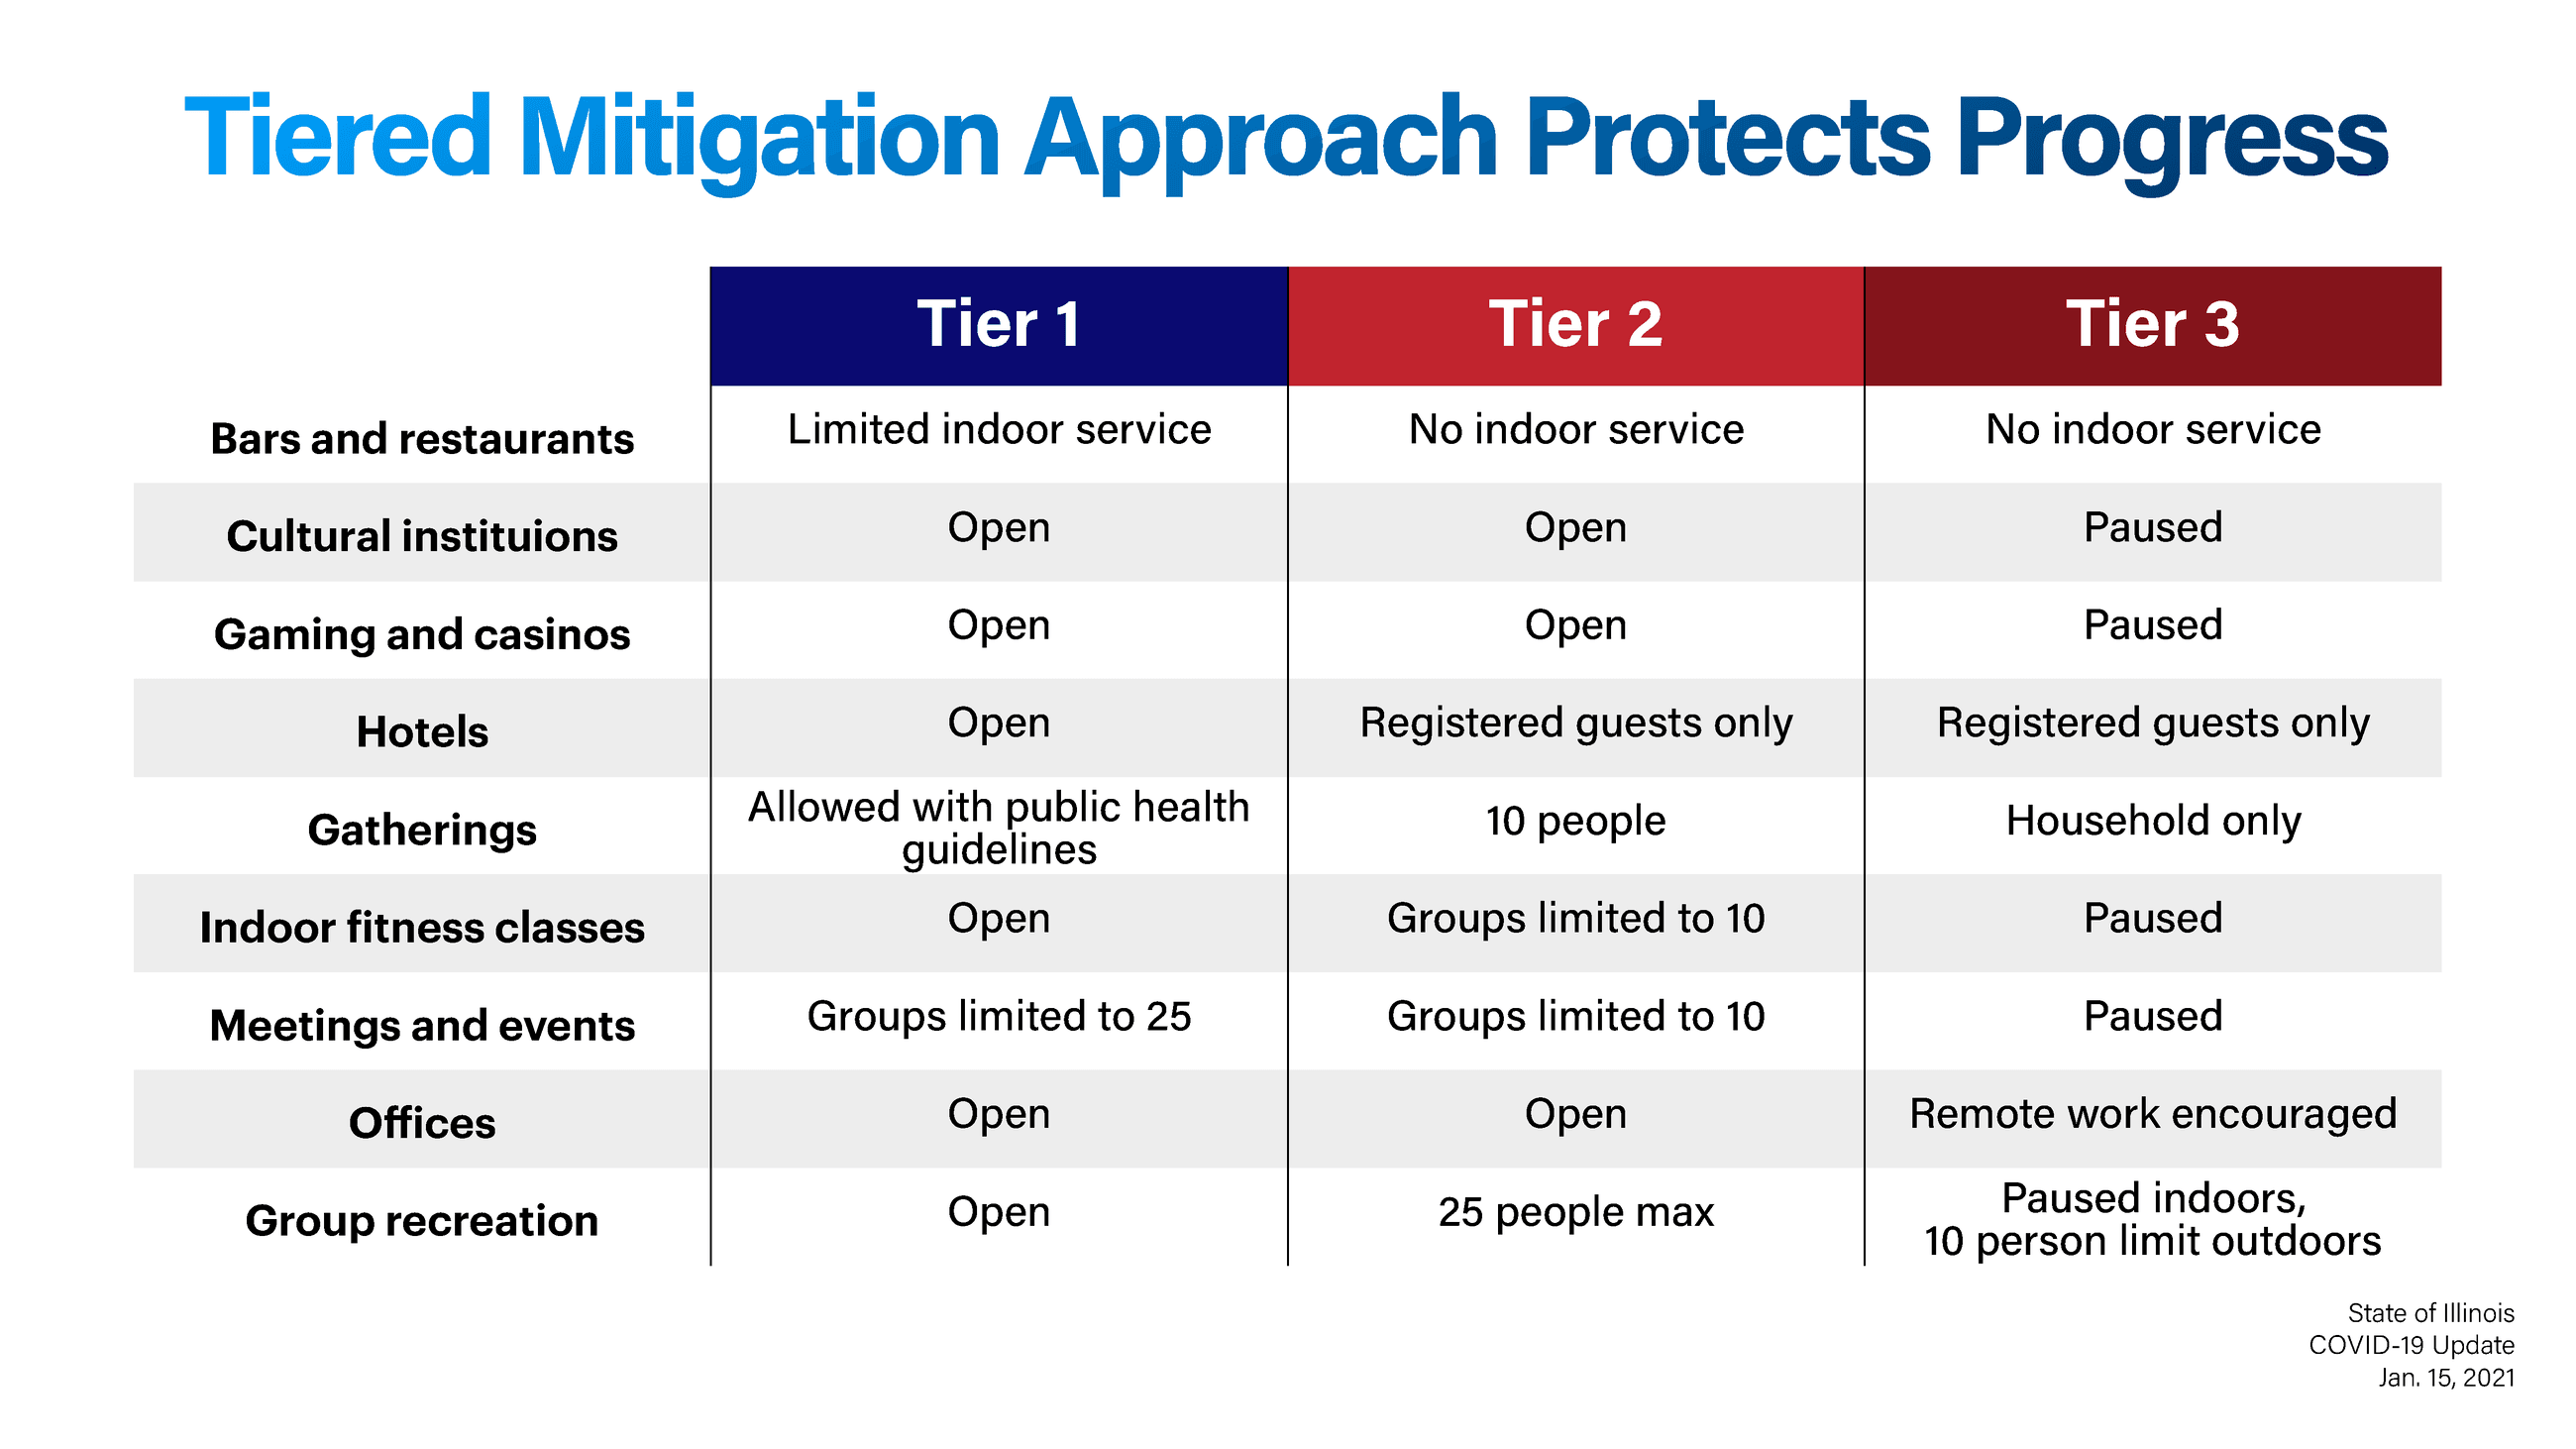 Tier 2 Mitigations Opens in new window